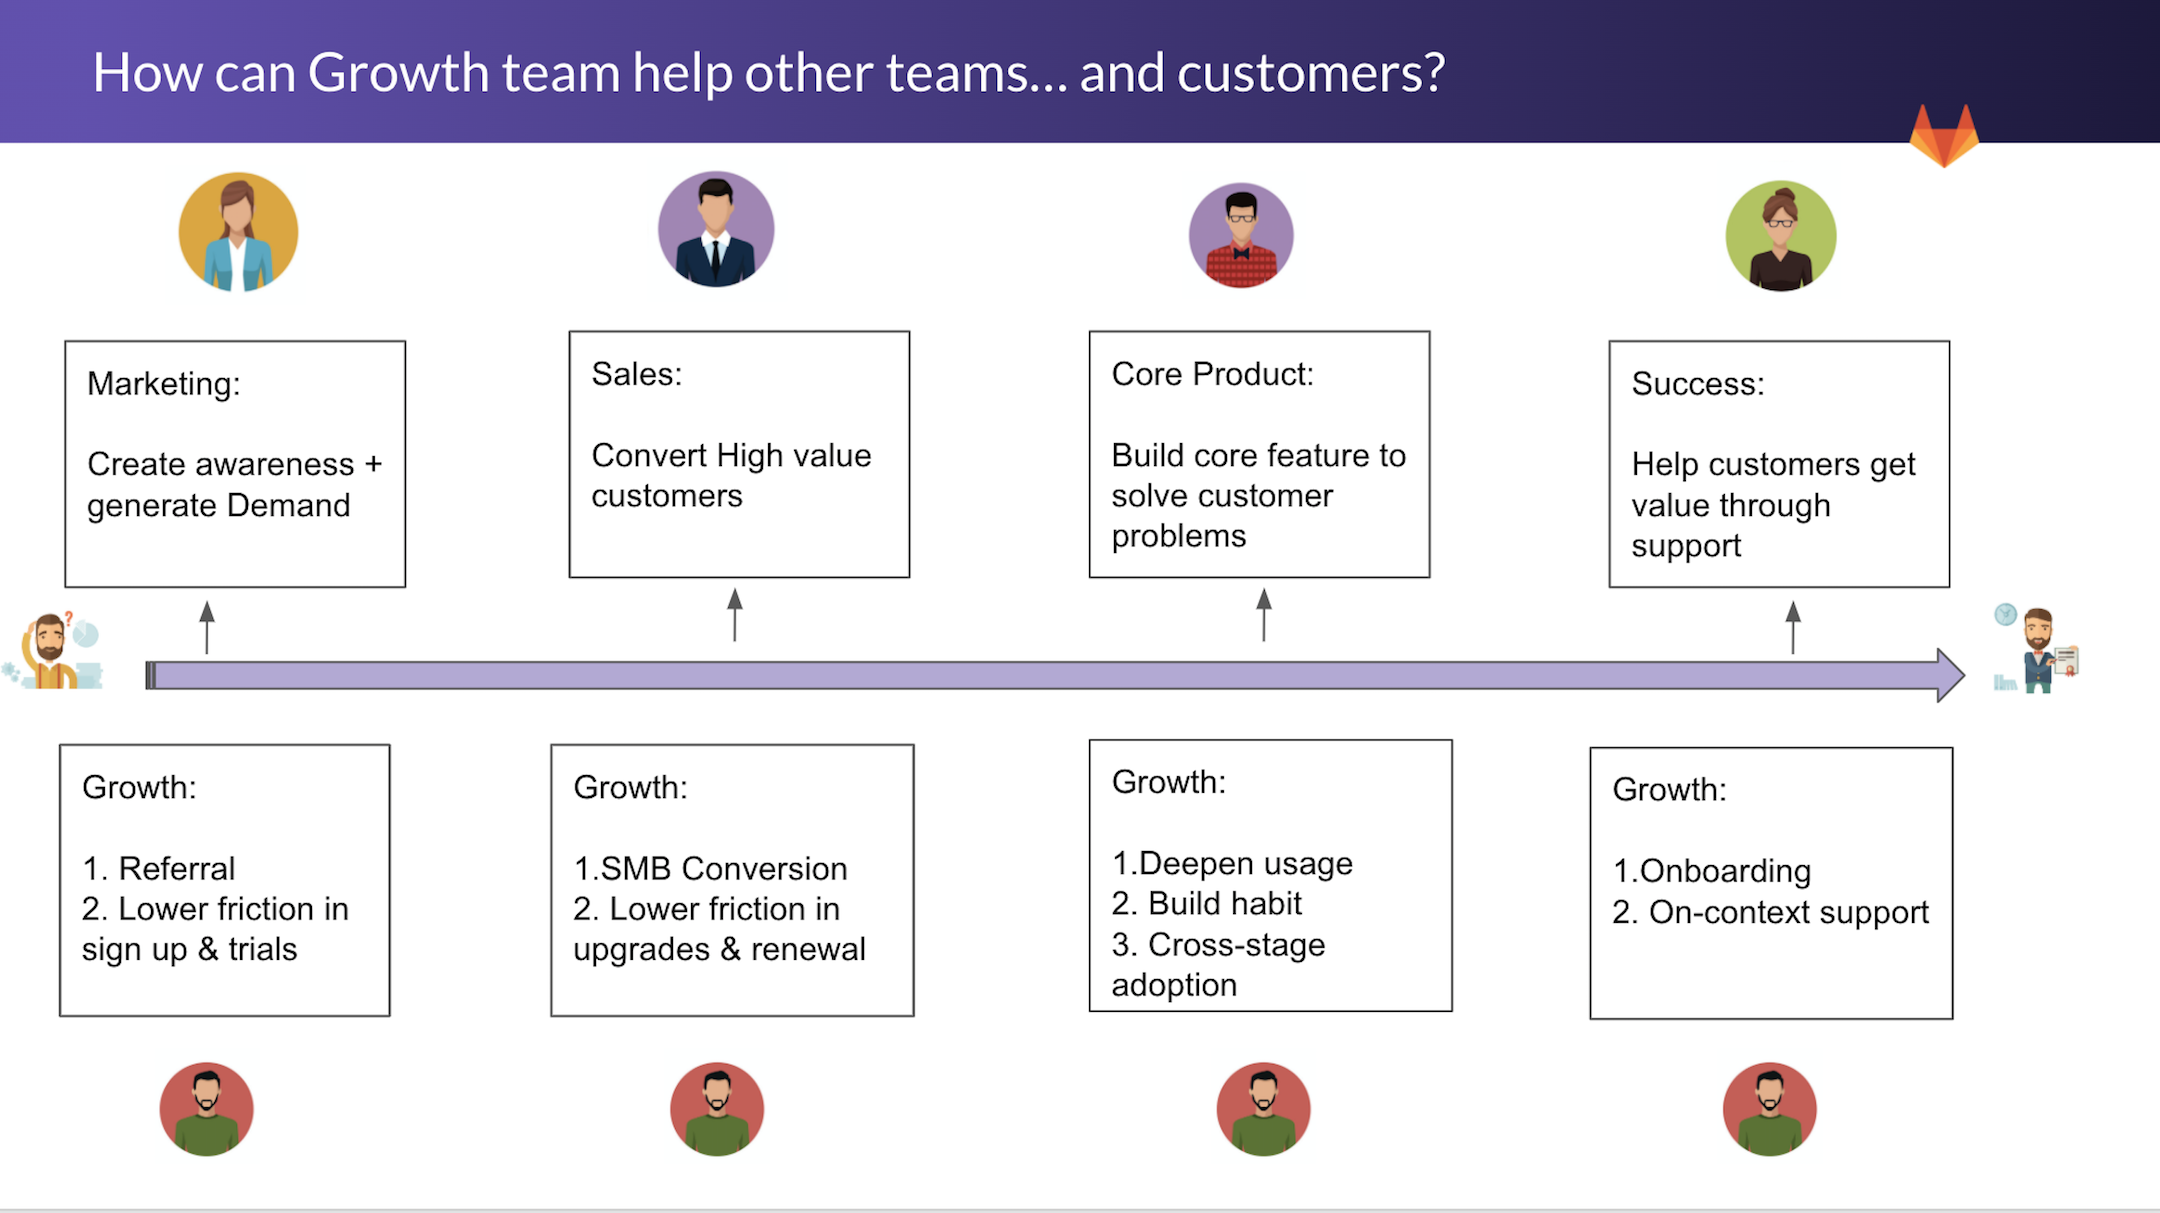 growth team helps